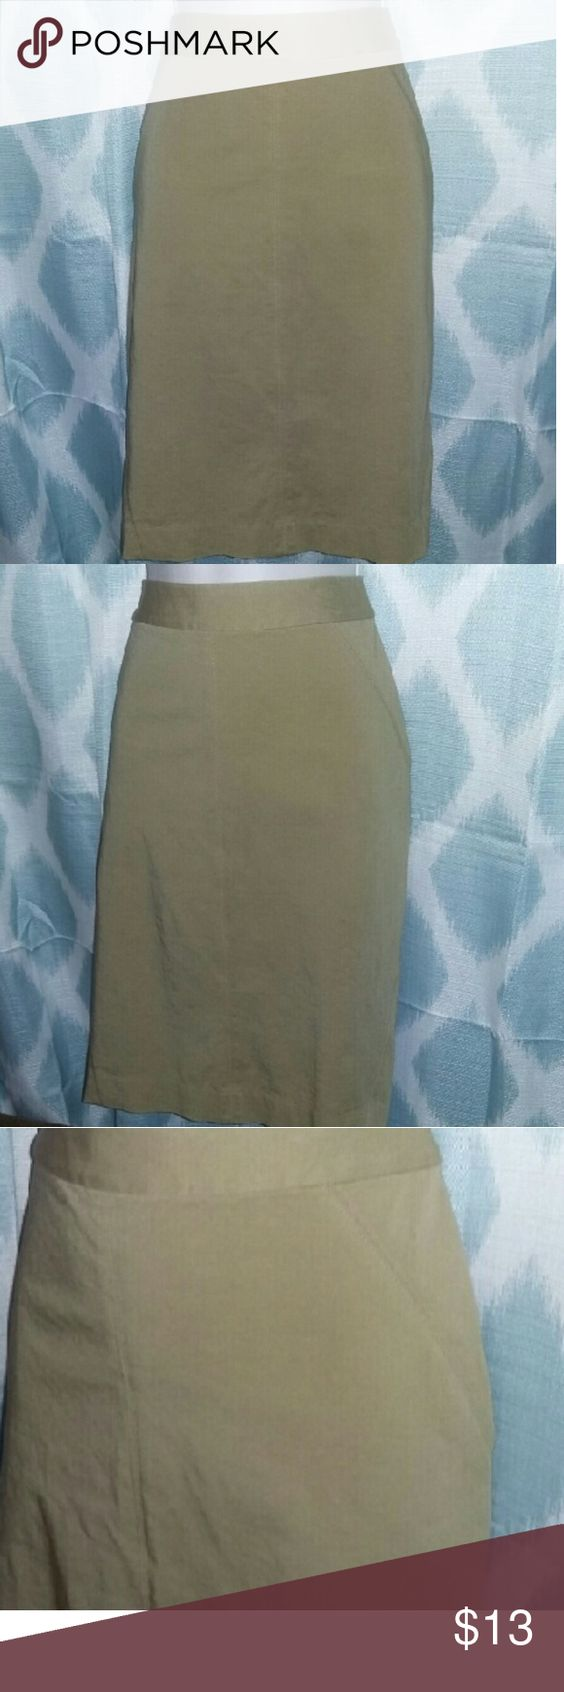 Ann Taylor brushed cotton khaki pencil skirt Straight cut skirt, below the knee length, back zip closure. Like new condition Ann Taylor Skirts Pencil